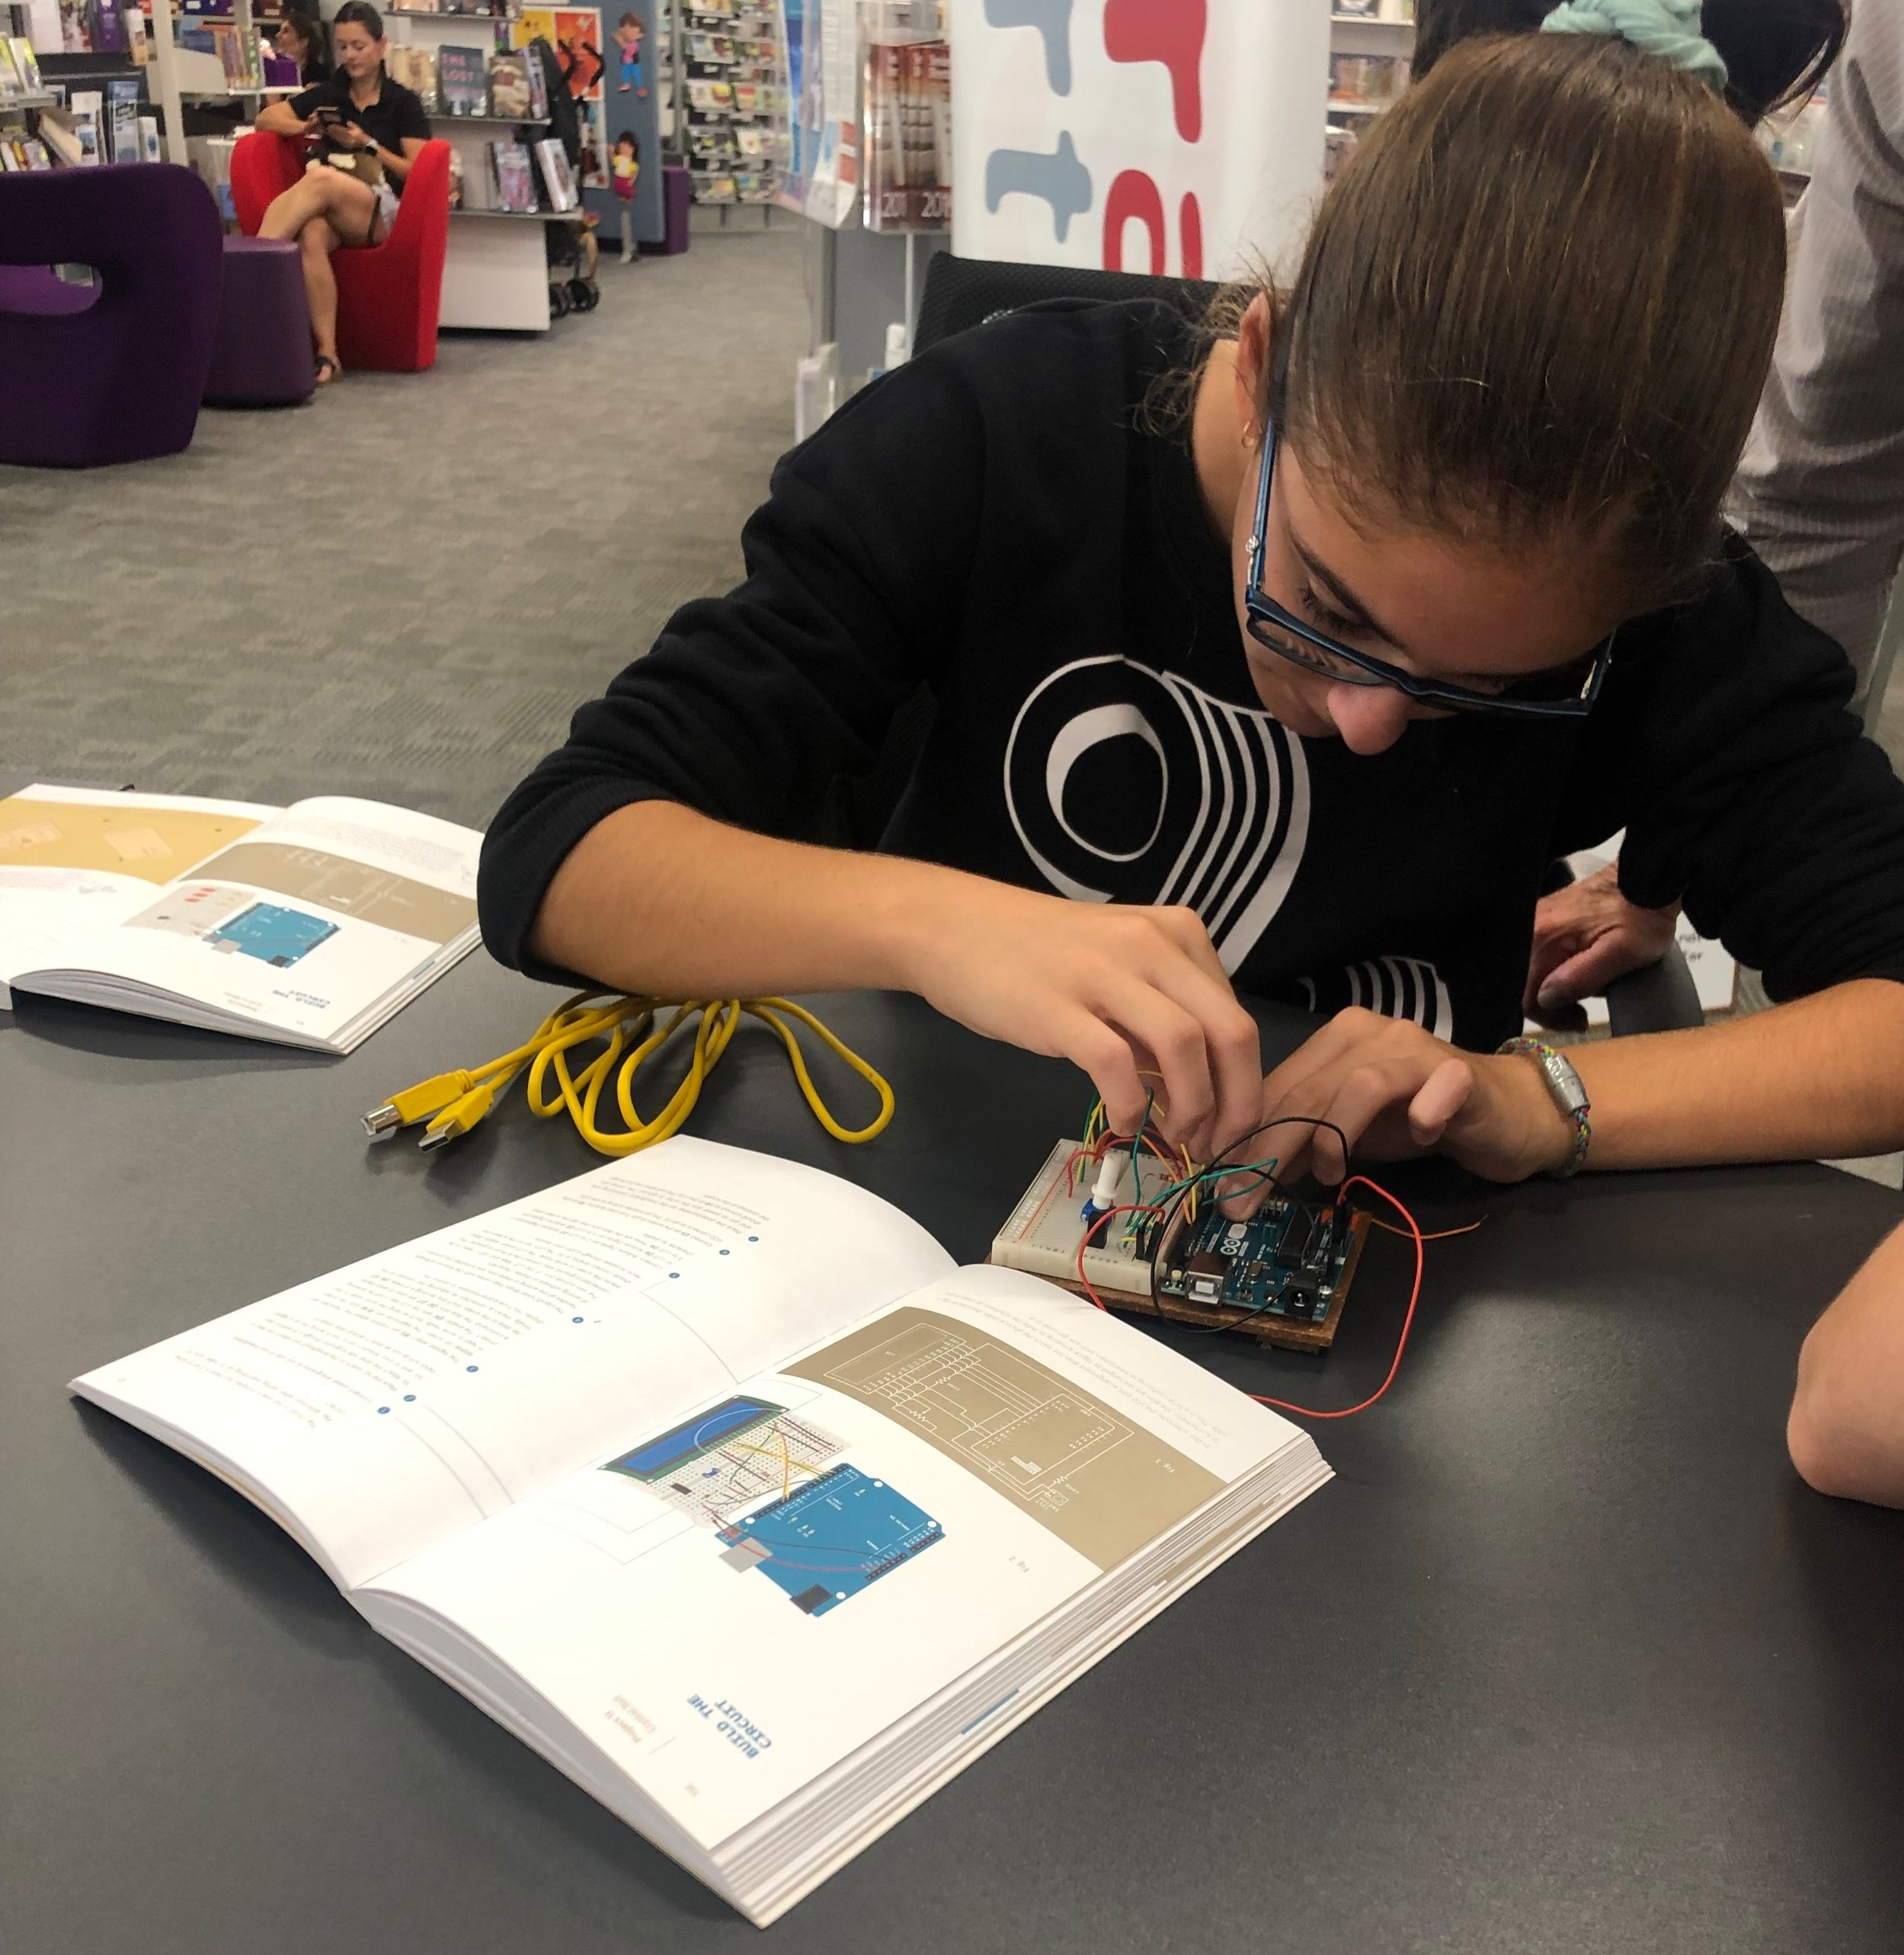 Nyngan Workshop - Working with the Arduino Kits the children looked at the basics of circuits and how to code functions. They also had an opportunity to play with our OZO Bots where they coded with colour.